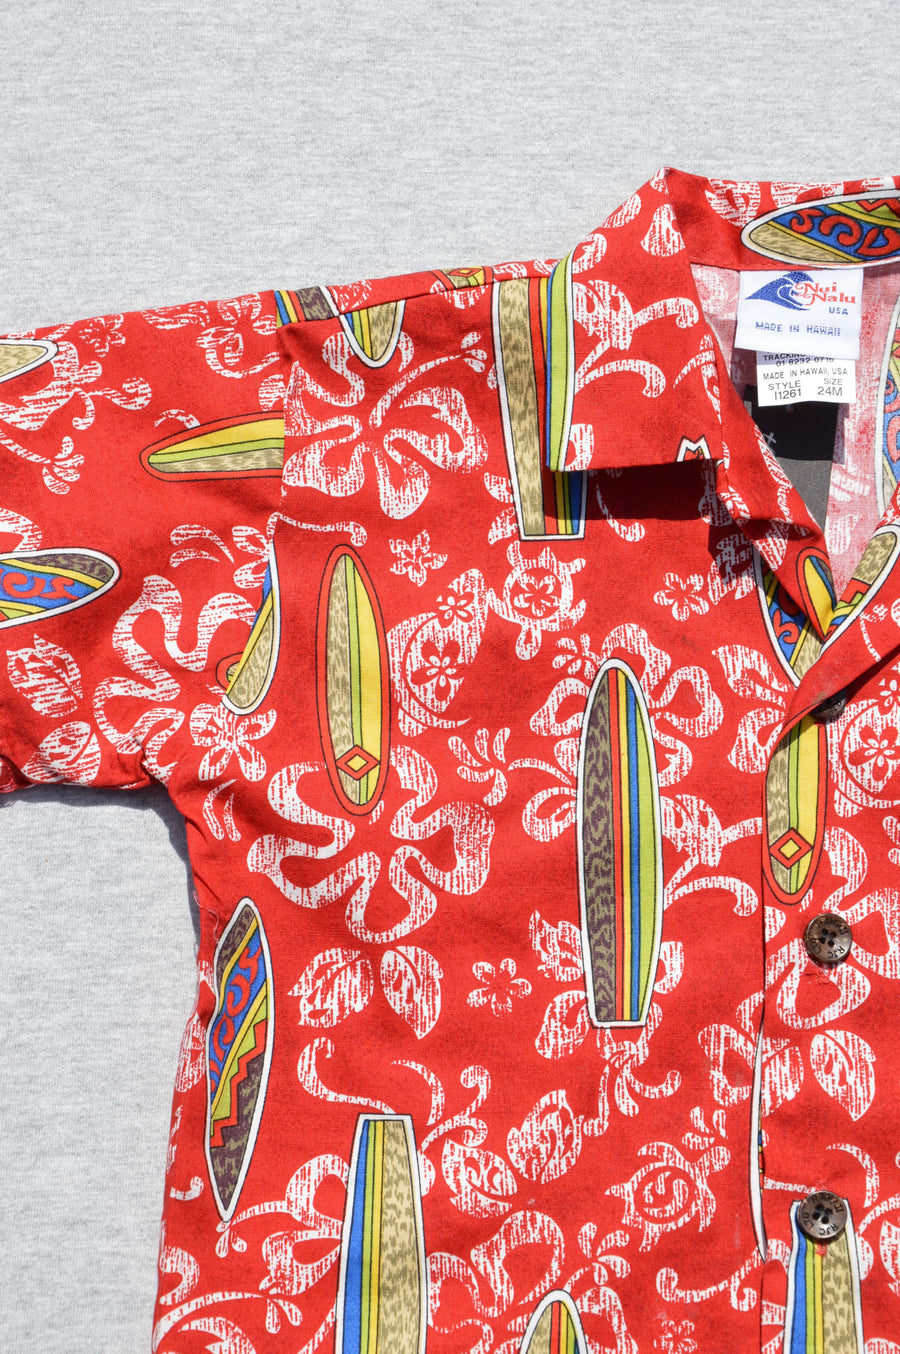 Nui Nalu - nearly new - red Hawaiian shirt, size 2